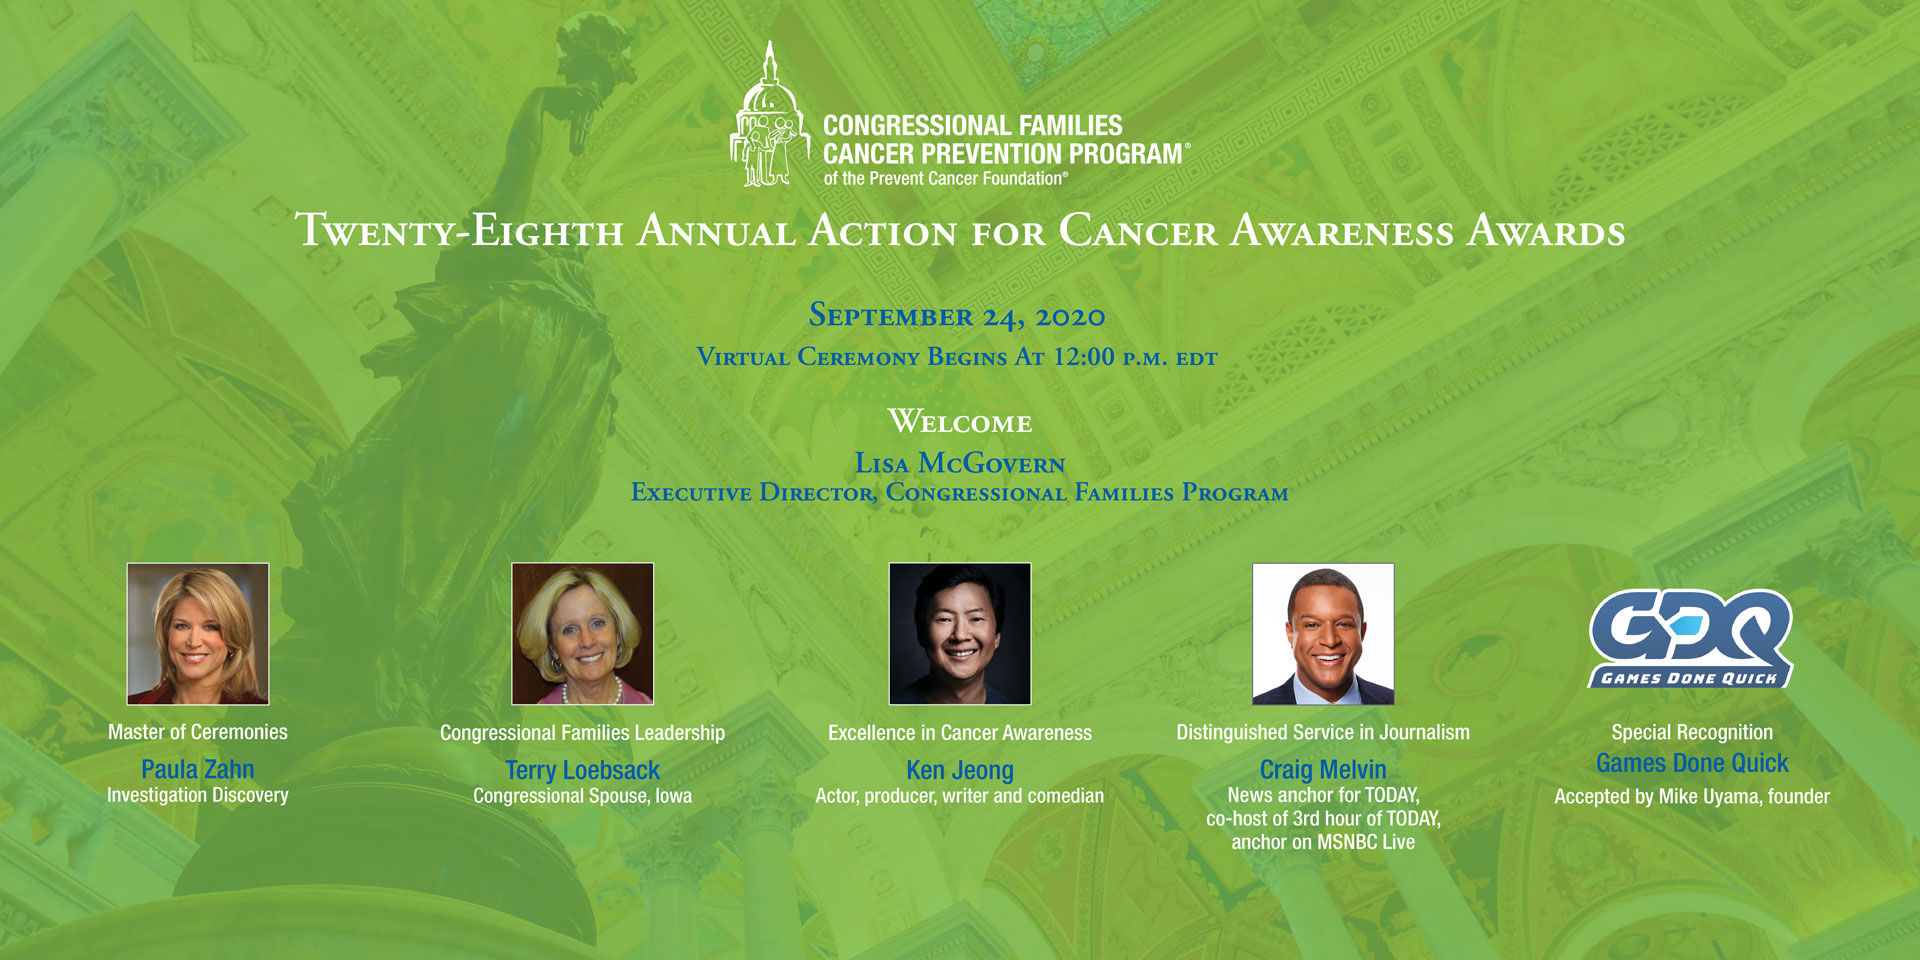 28th Annual Action for Cancer Awareness Awards